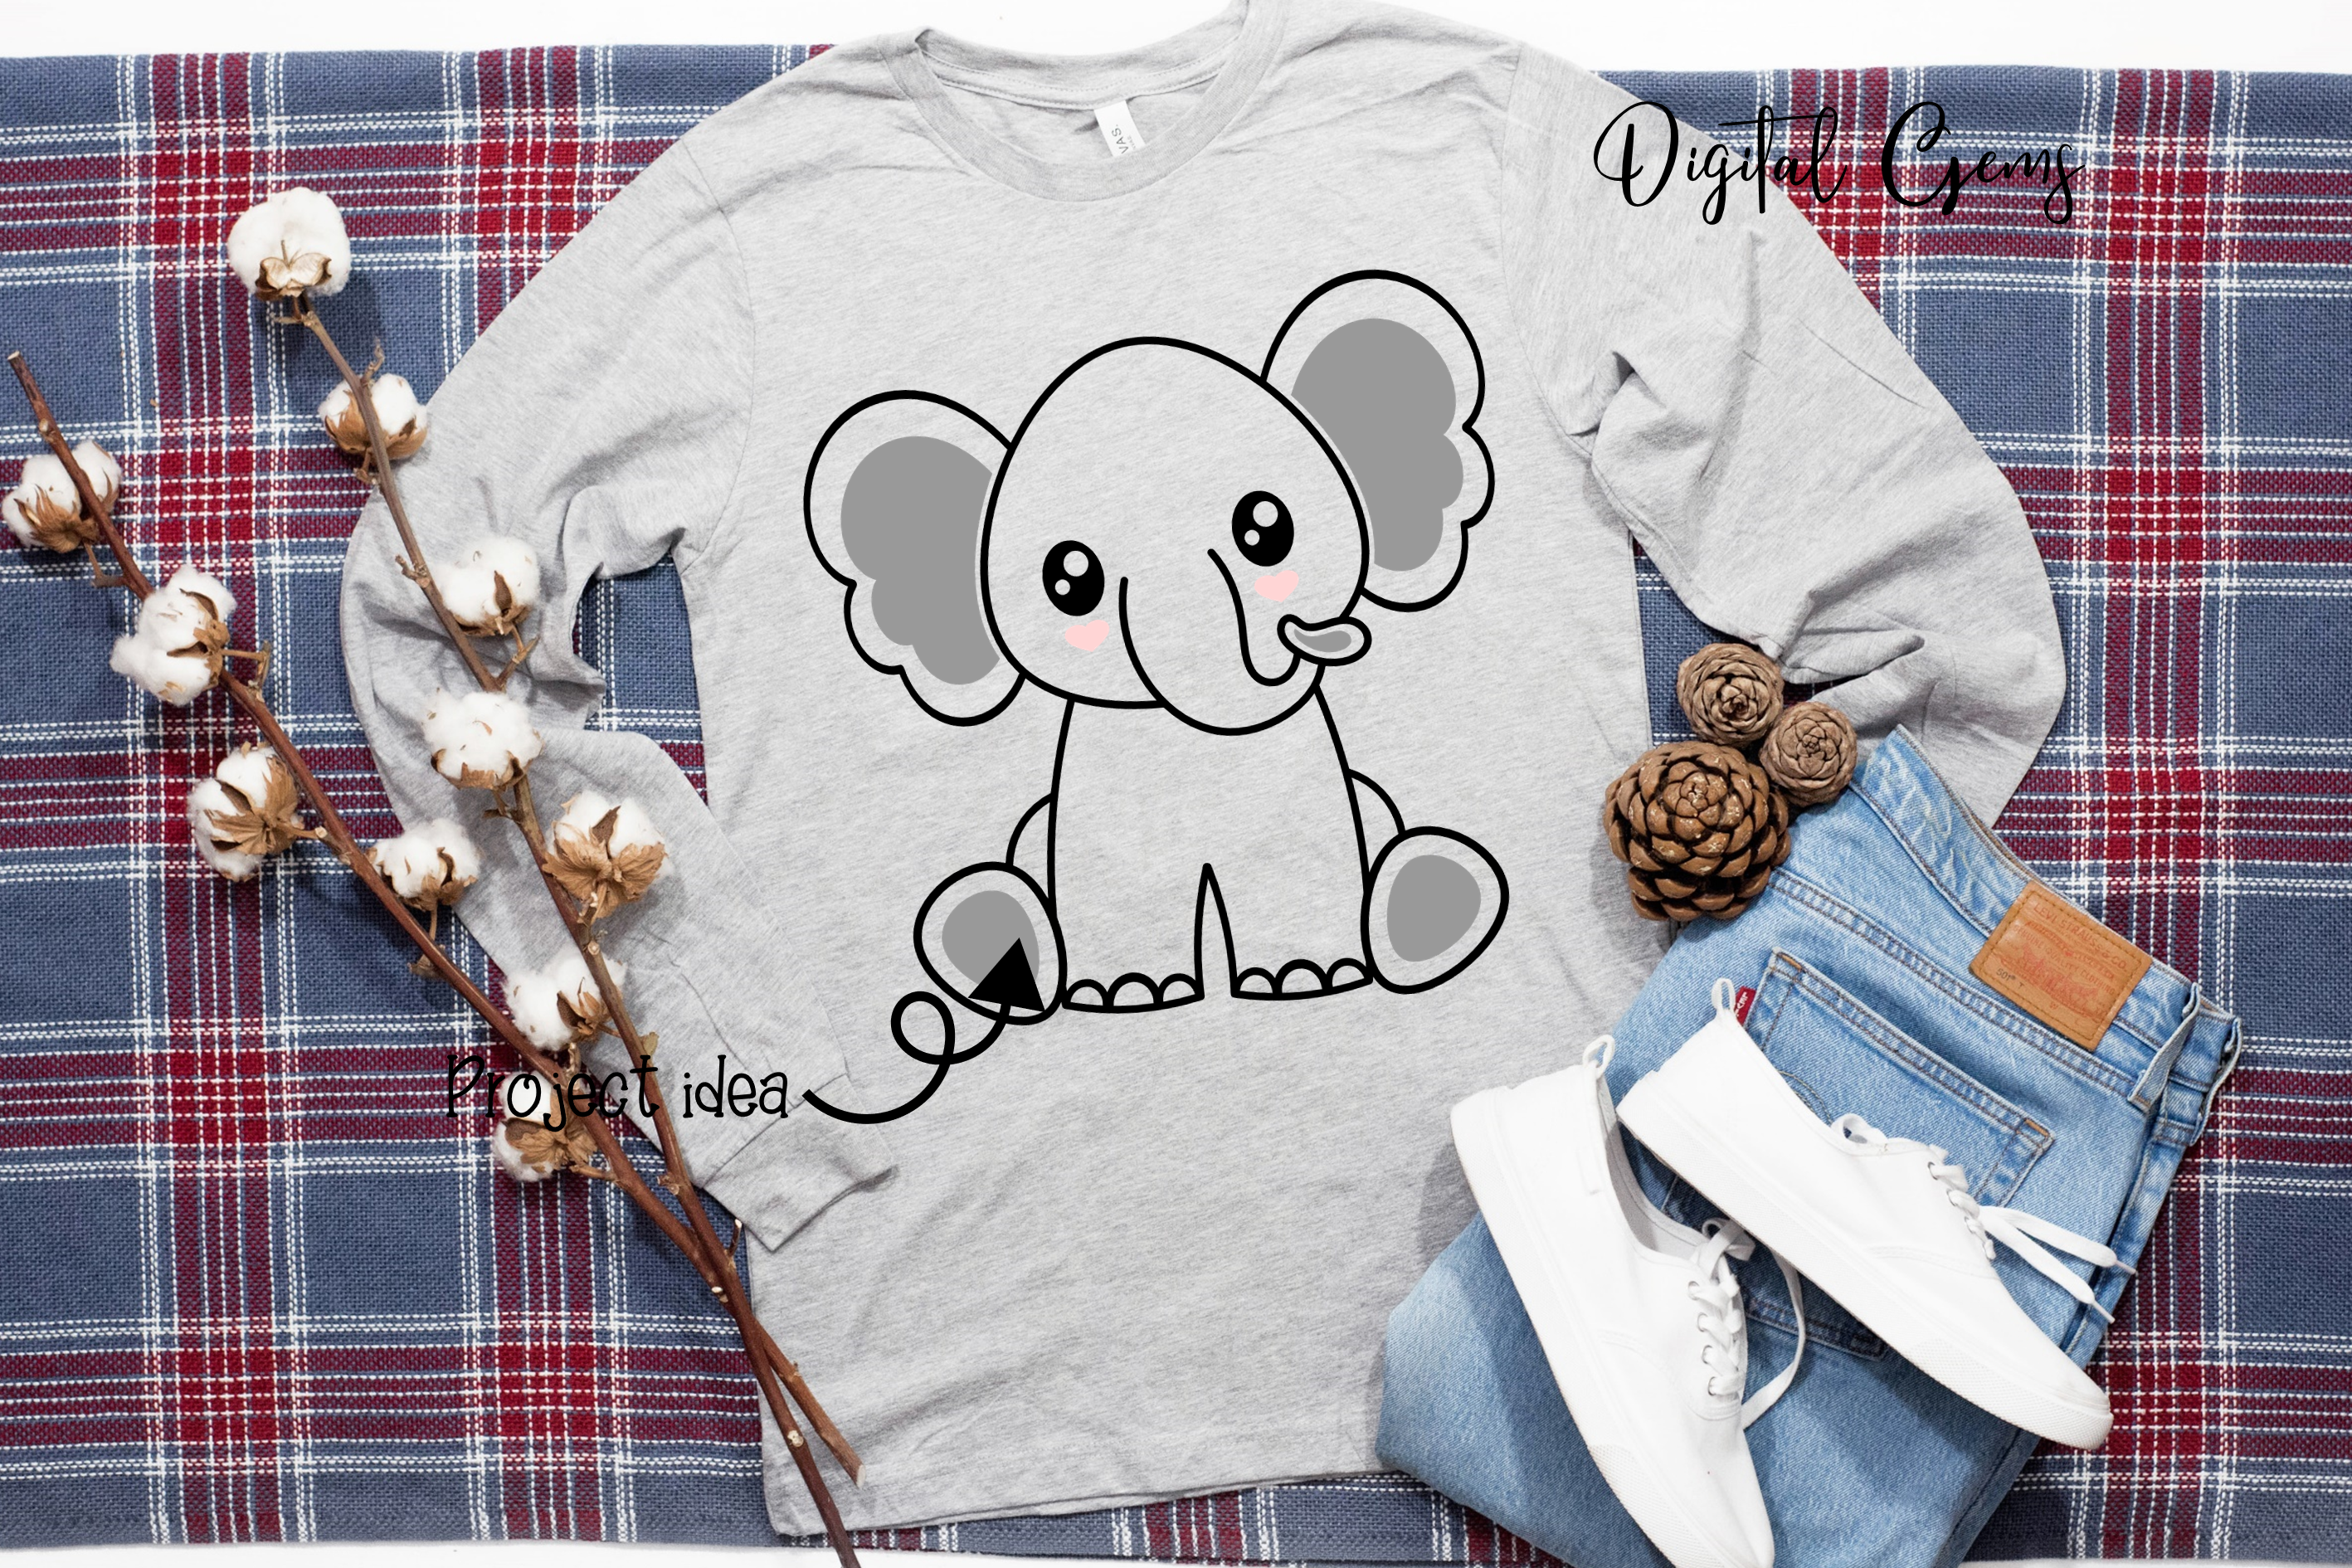 Elephant design SVG / DXF / EPS / PNG files example image 4